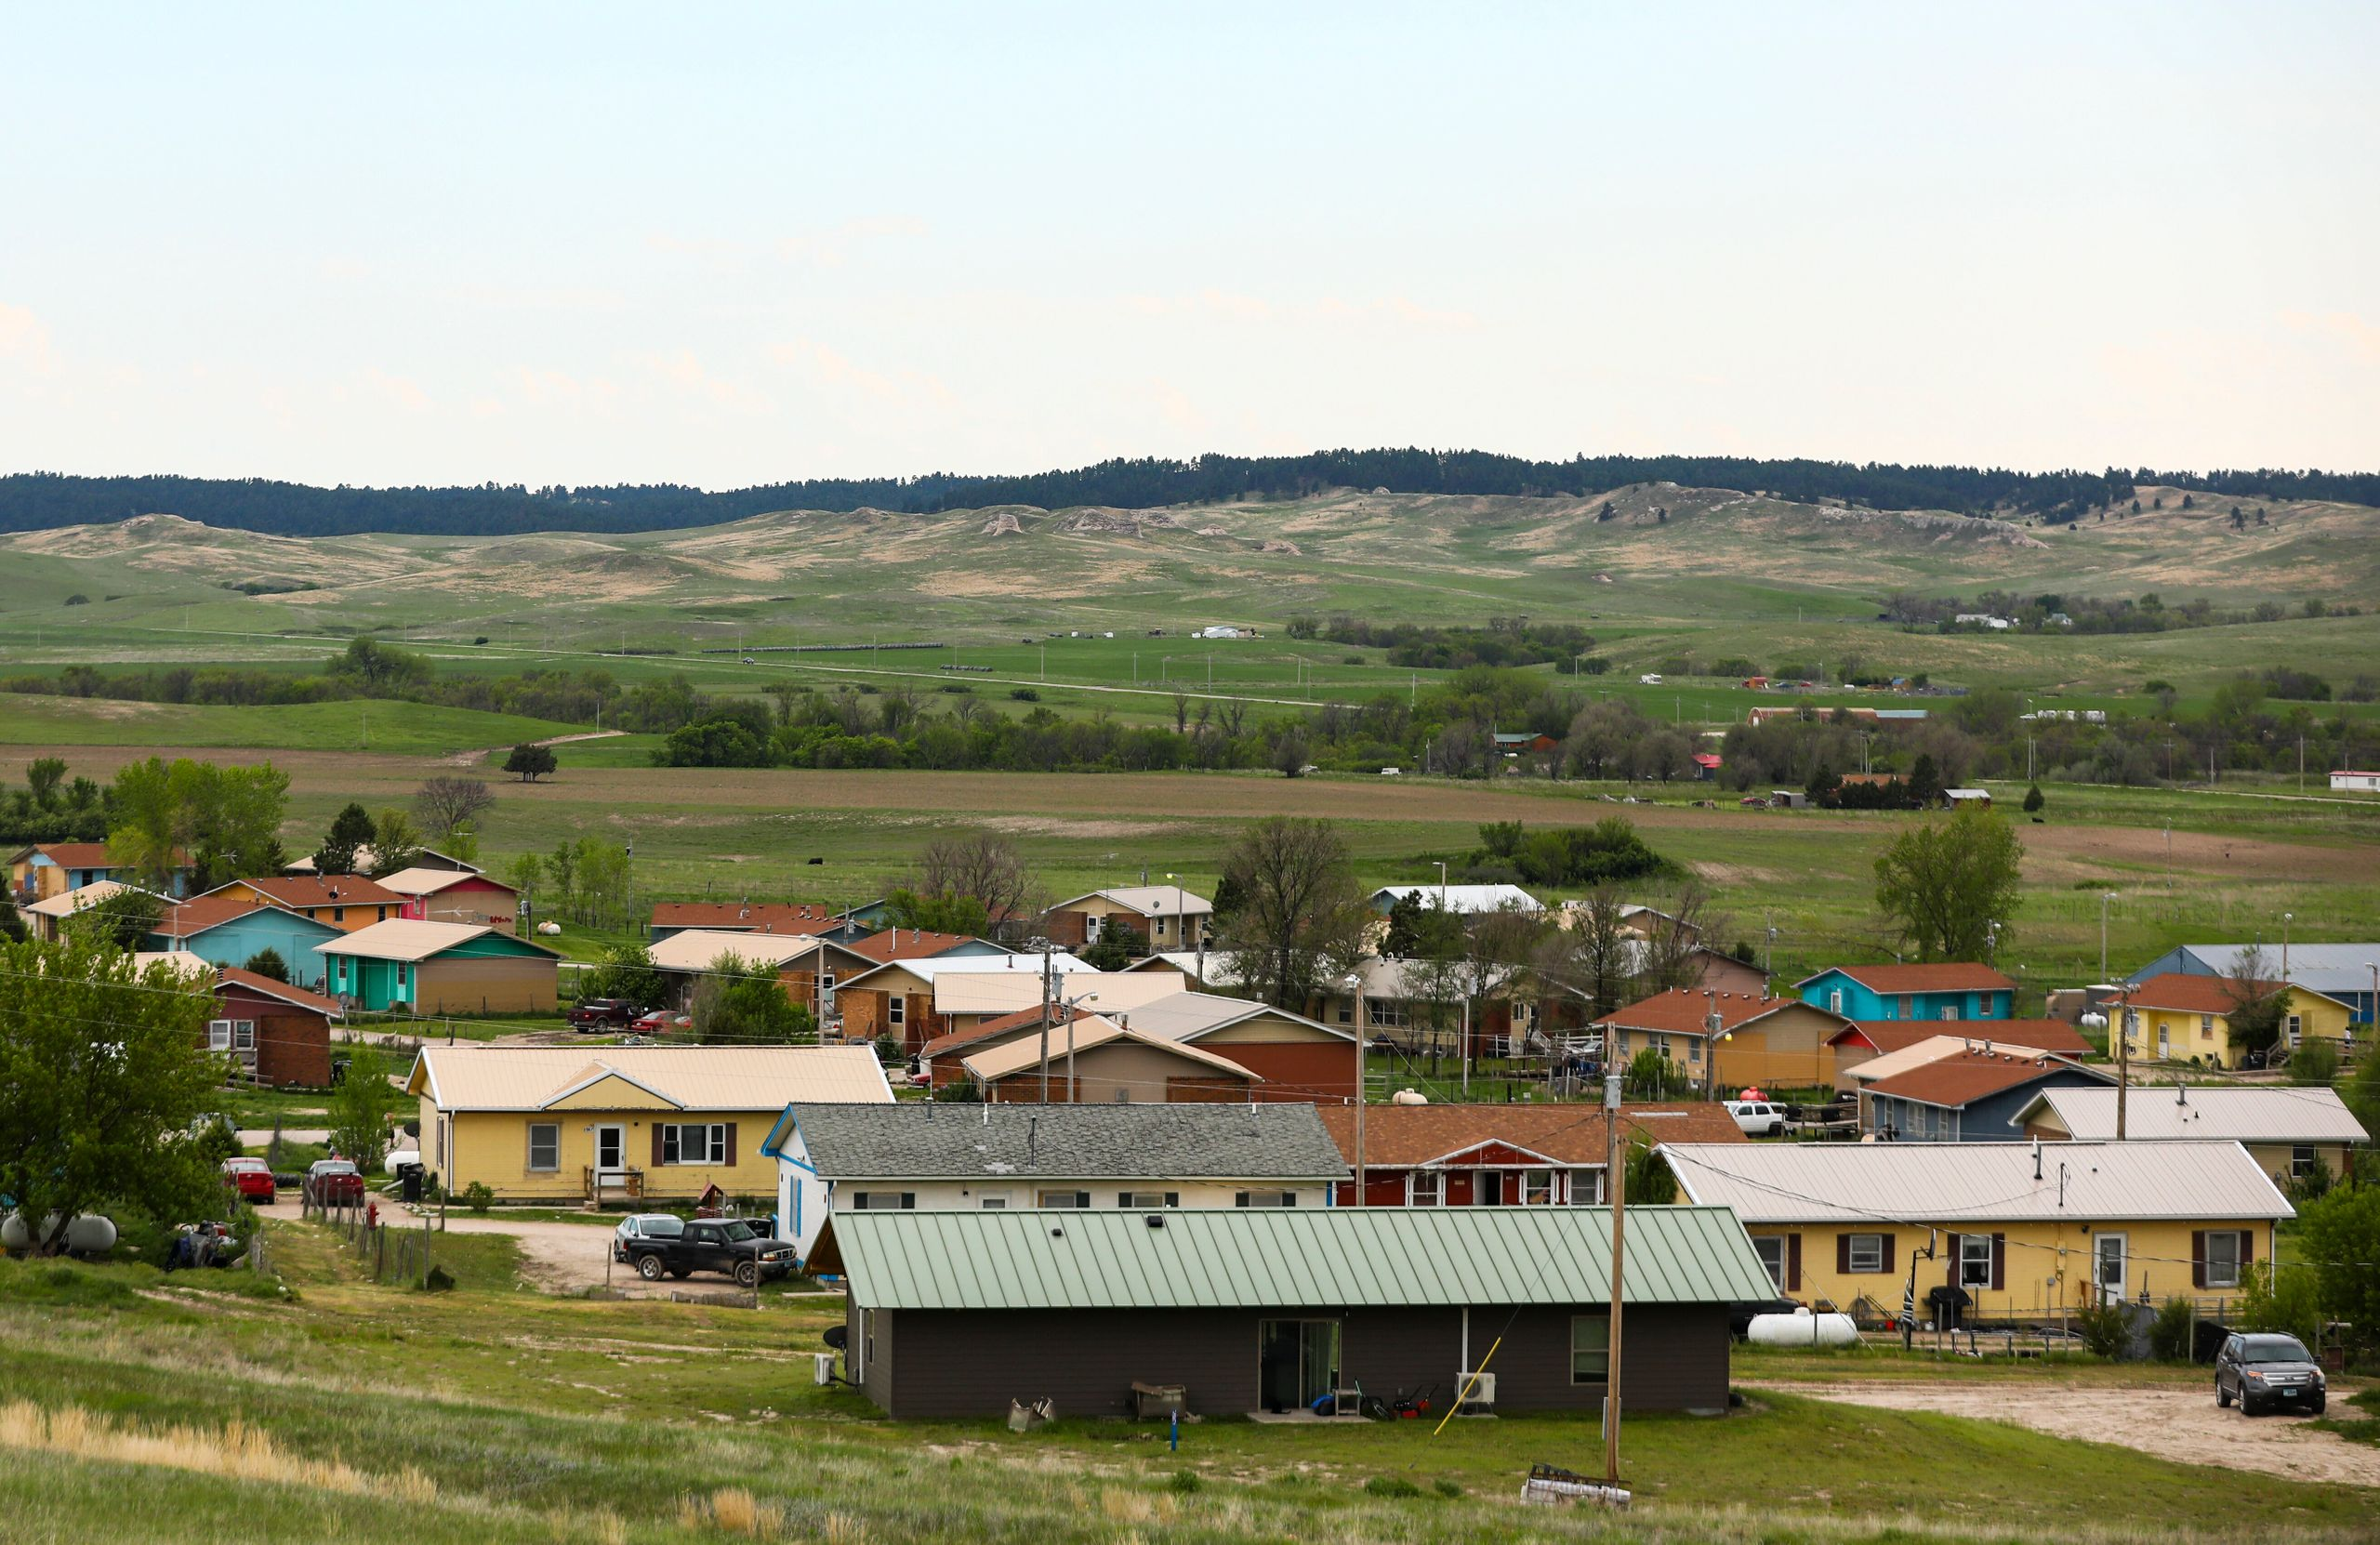 A group of homes on the Pine Ridge Reservation in South Dakota on May 31, 2019.